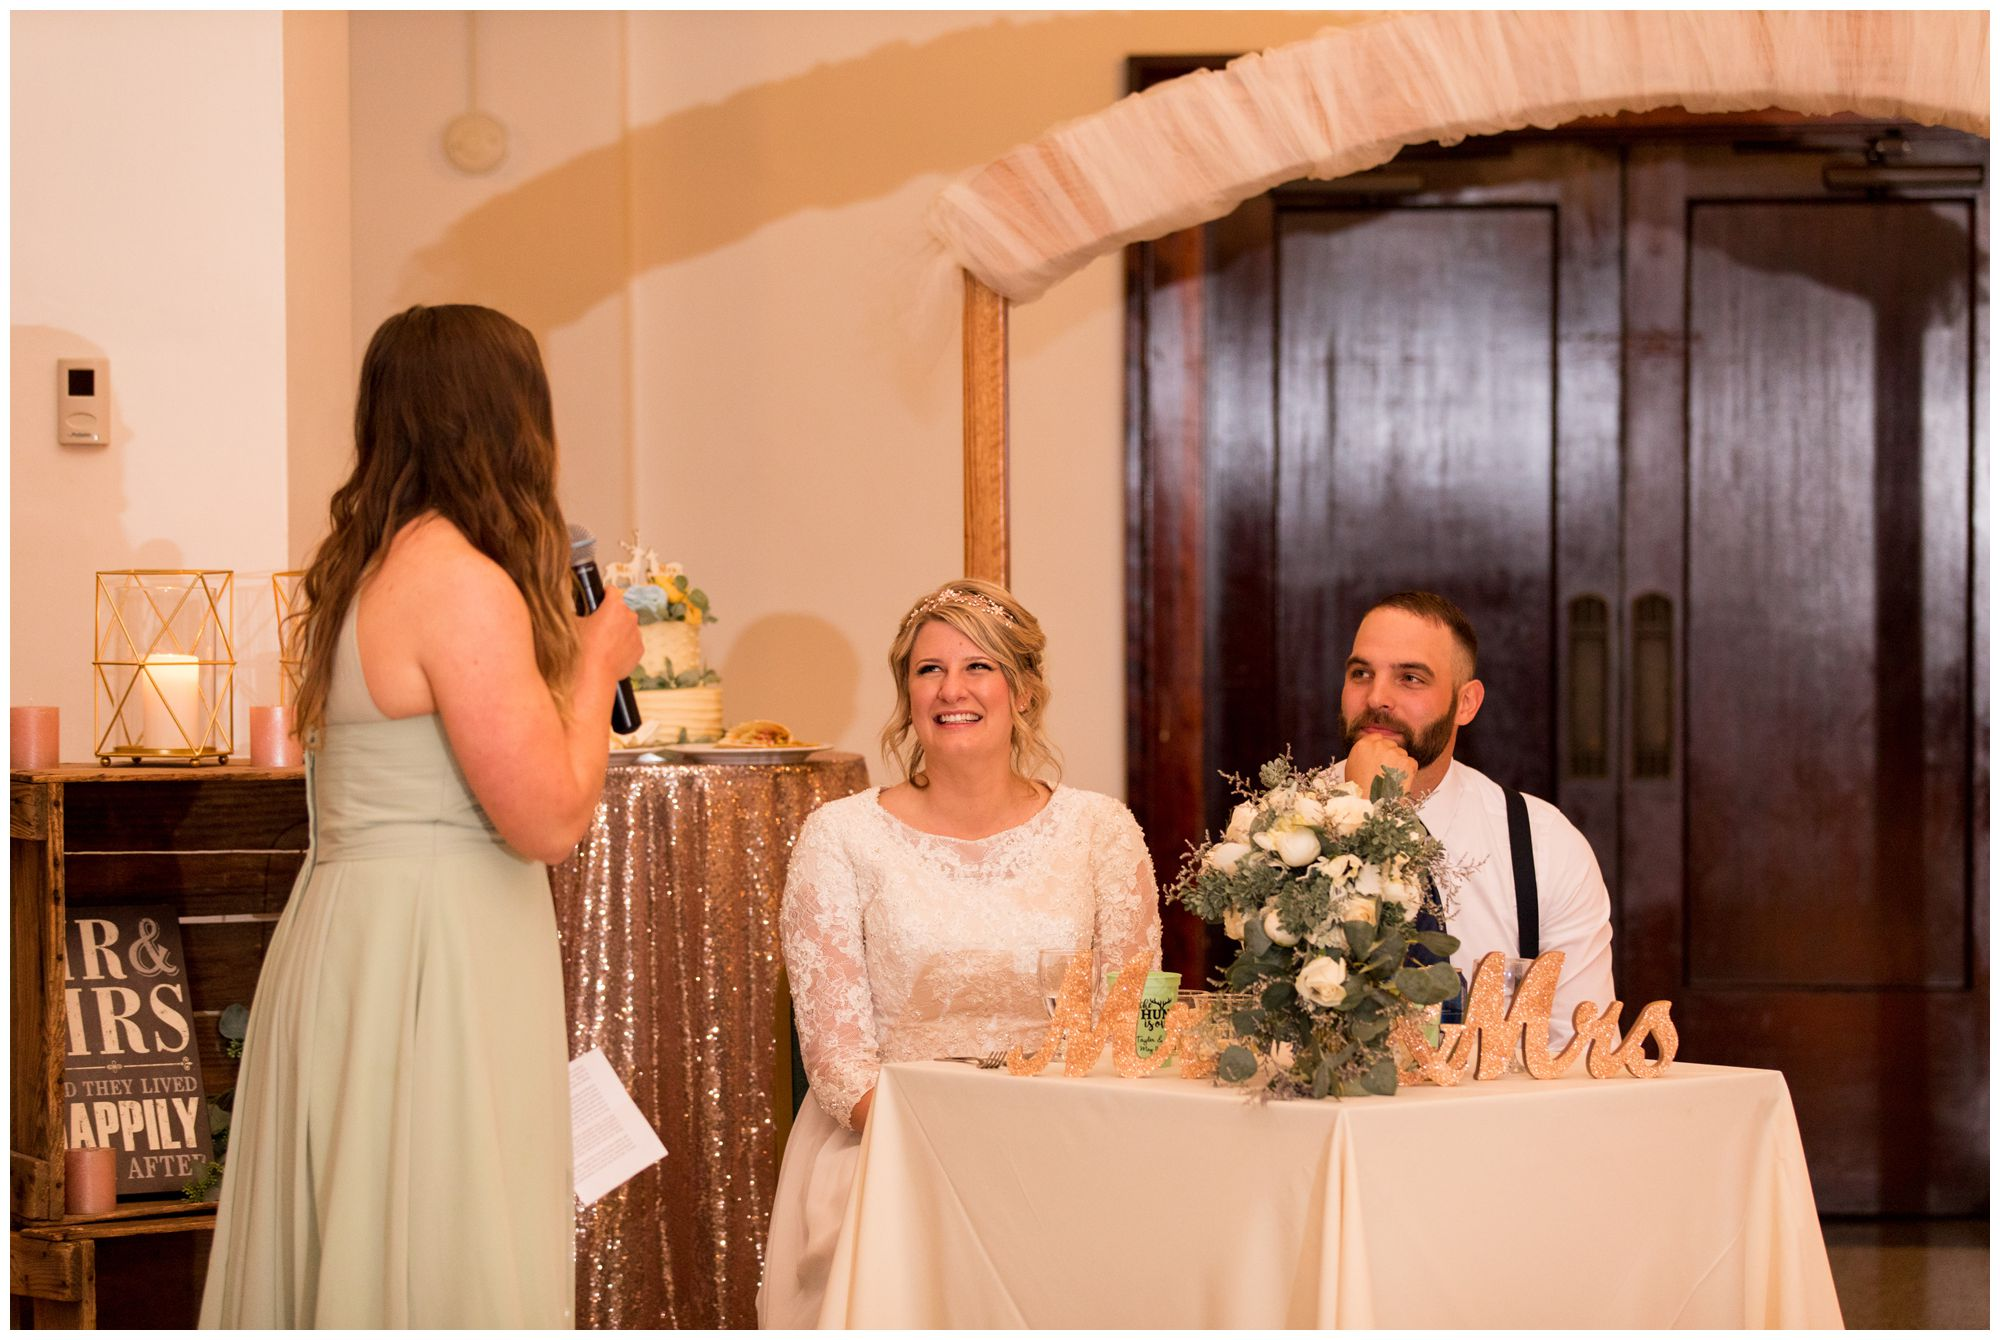 maid of honor gives speech during wedding reception at Cornerstone Center for the Arts in Muncie Indiana